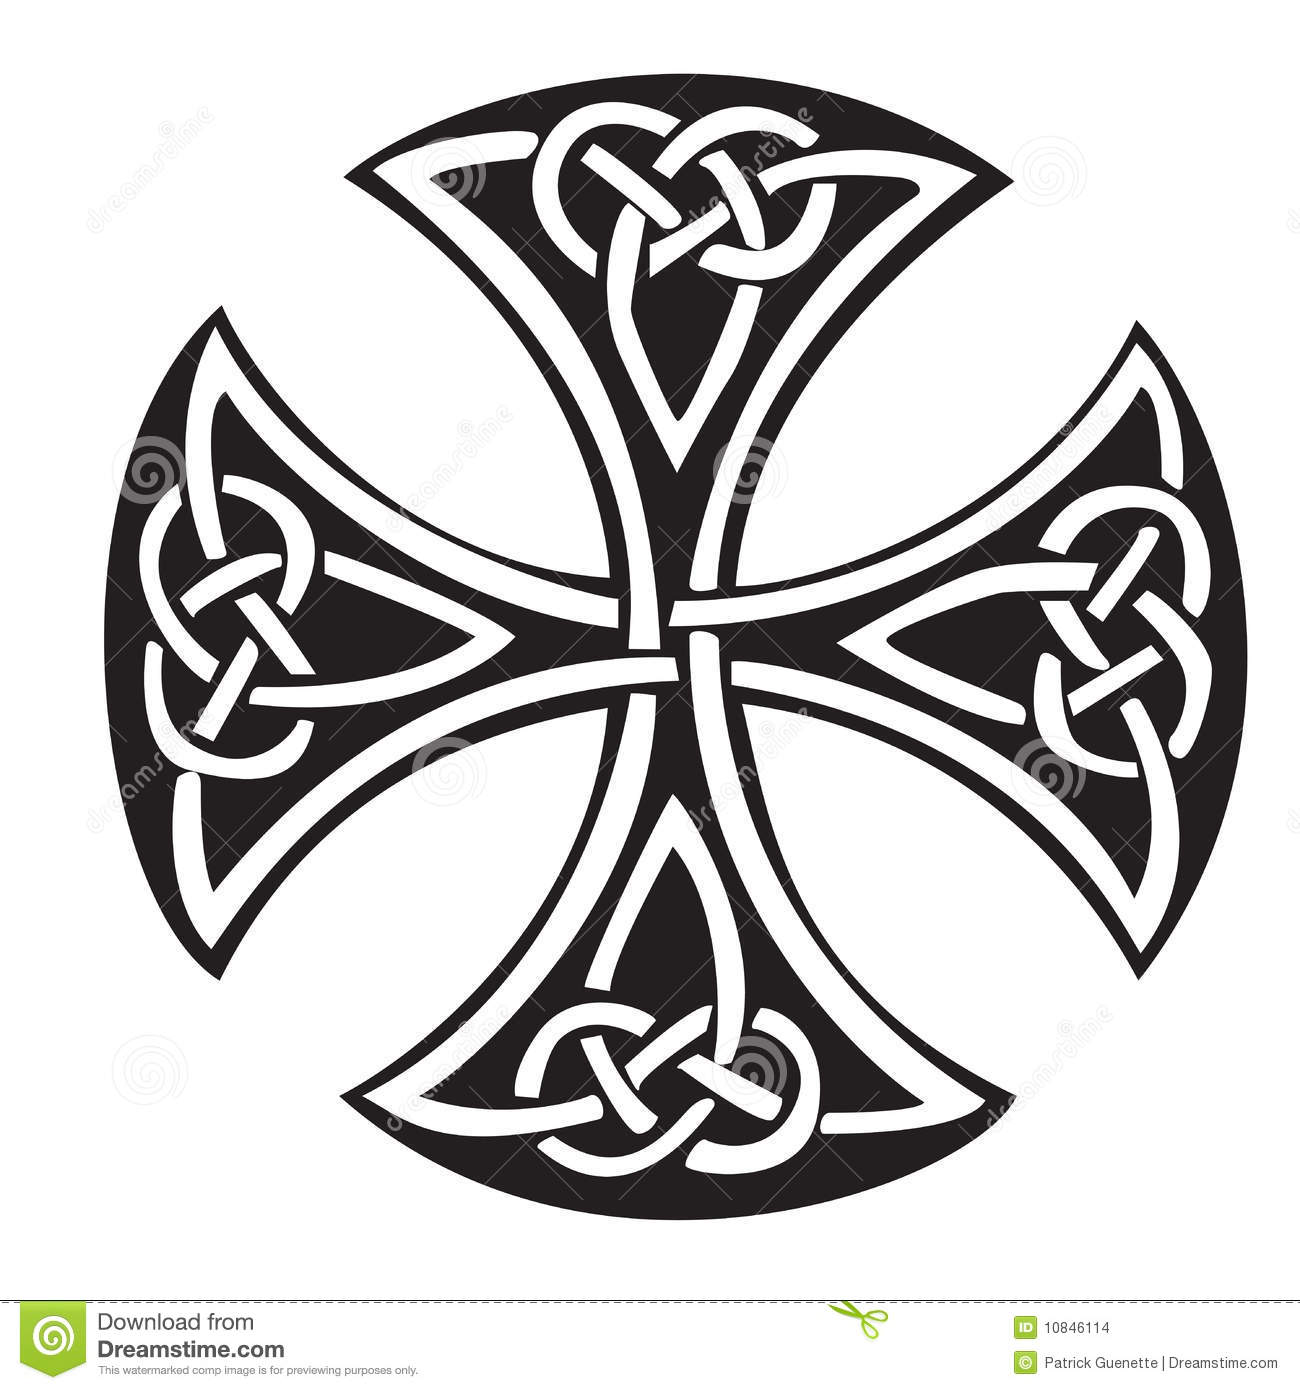 An illustration of a Celtic cross with a beautiful design, isolated on ...